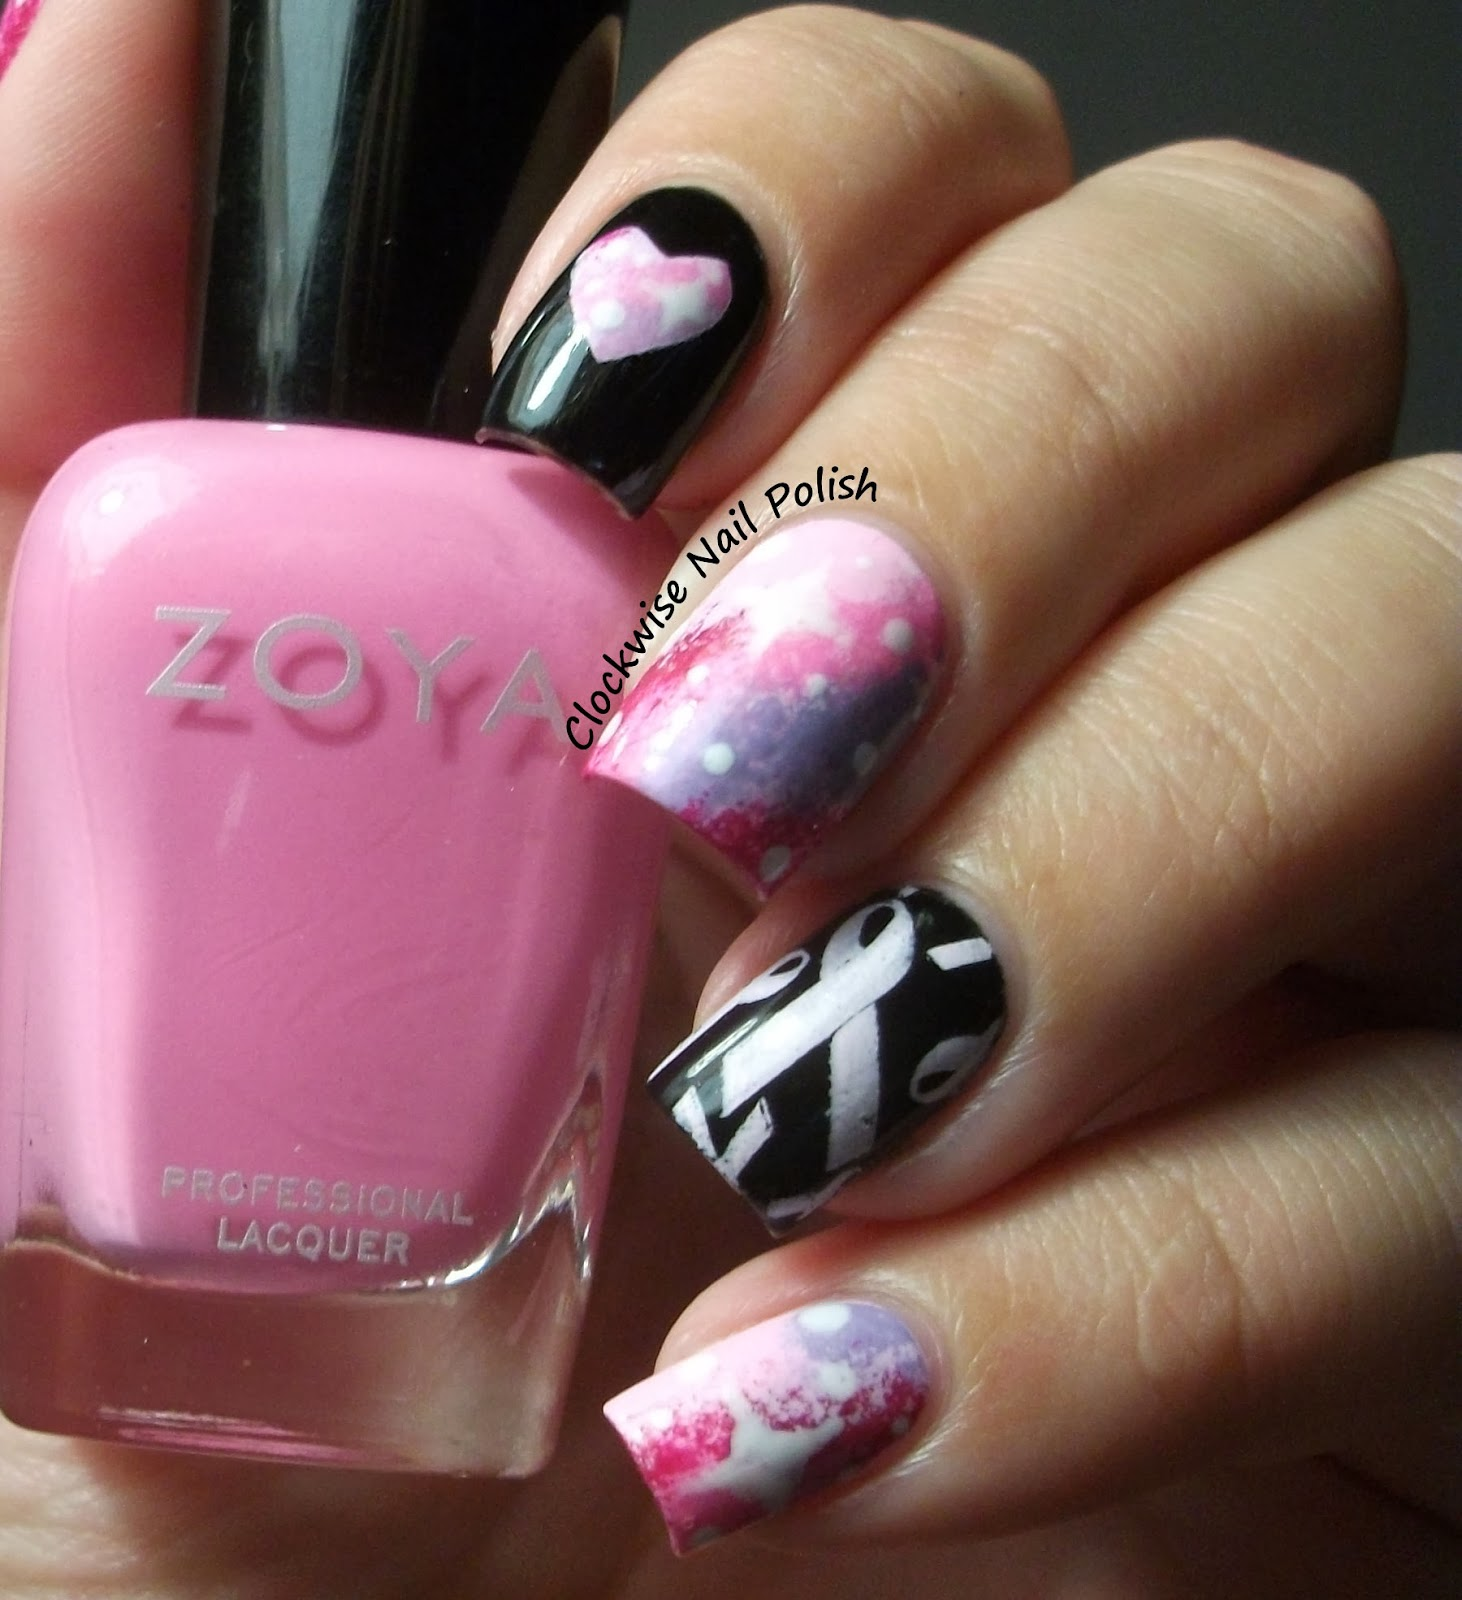 The Clockwise Nail Polish: Pink Nails For Breast Cancer